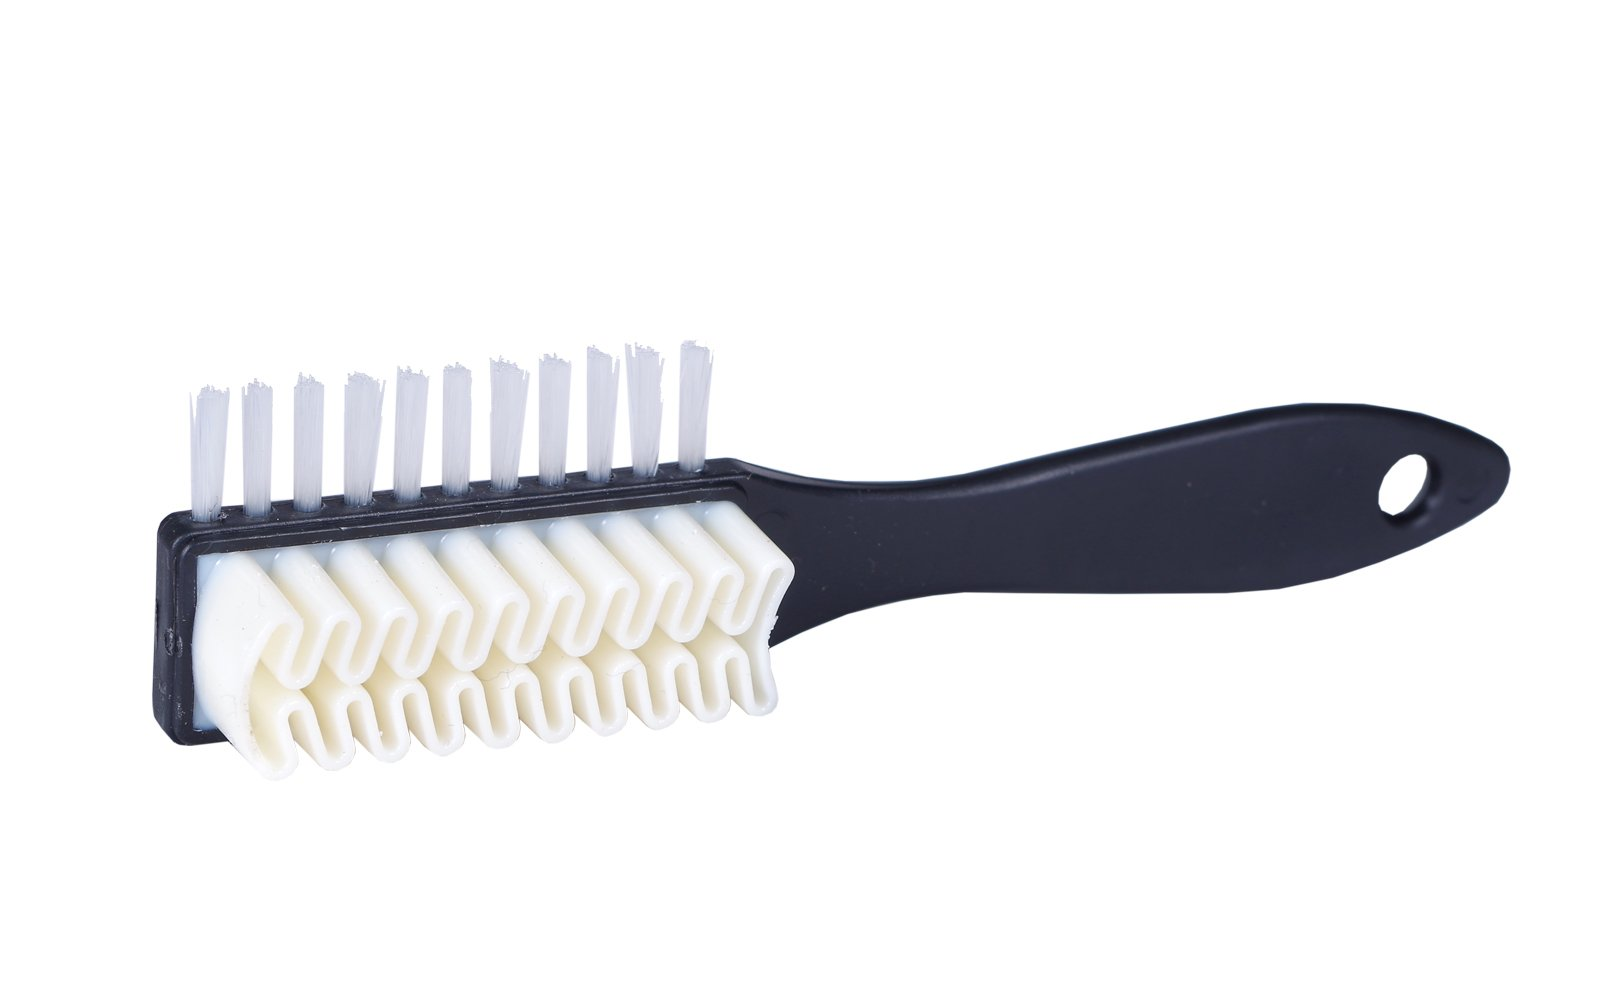 Kaps Crepe Nubuck Suede Shoe Brush Soft Bristles Clean Your Shoes Without Scratching Or Damaging For Boots Bags Of Any Colour Can Also Be